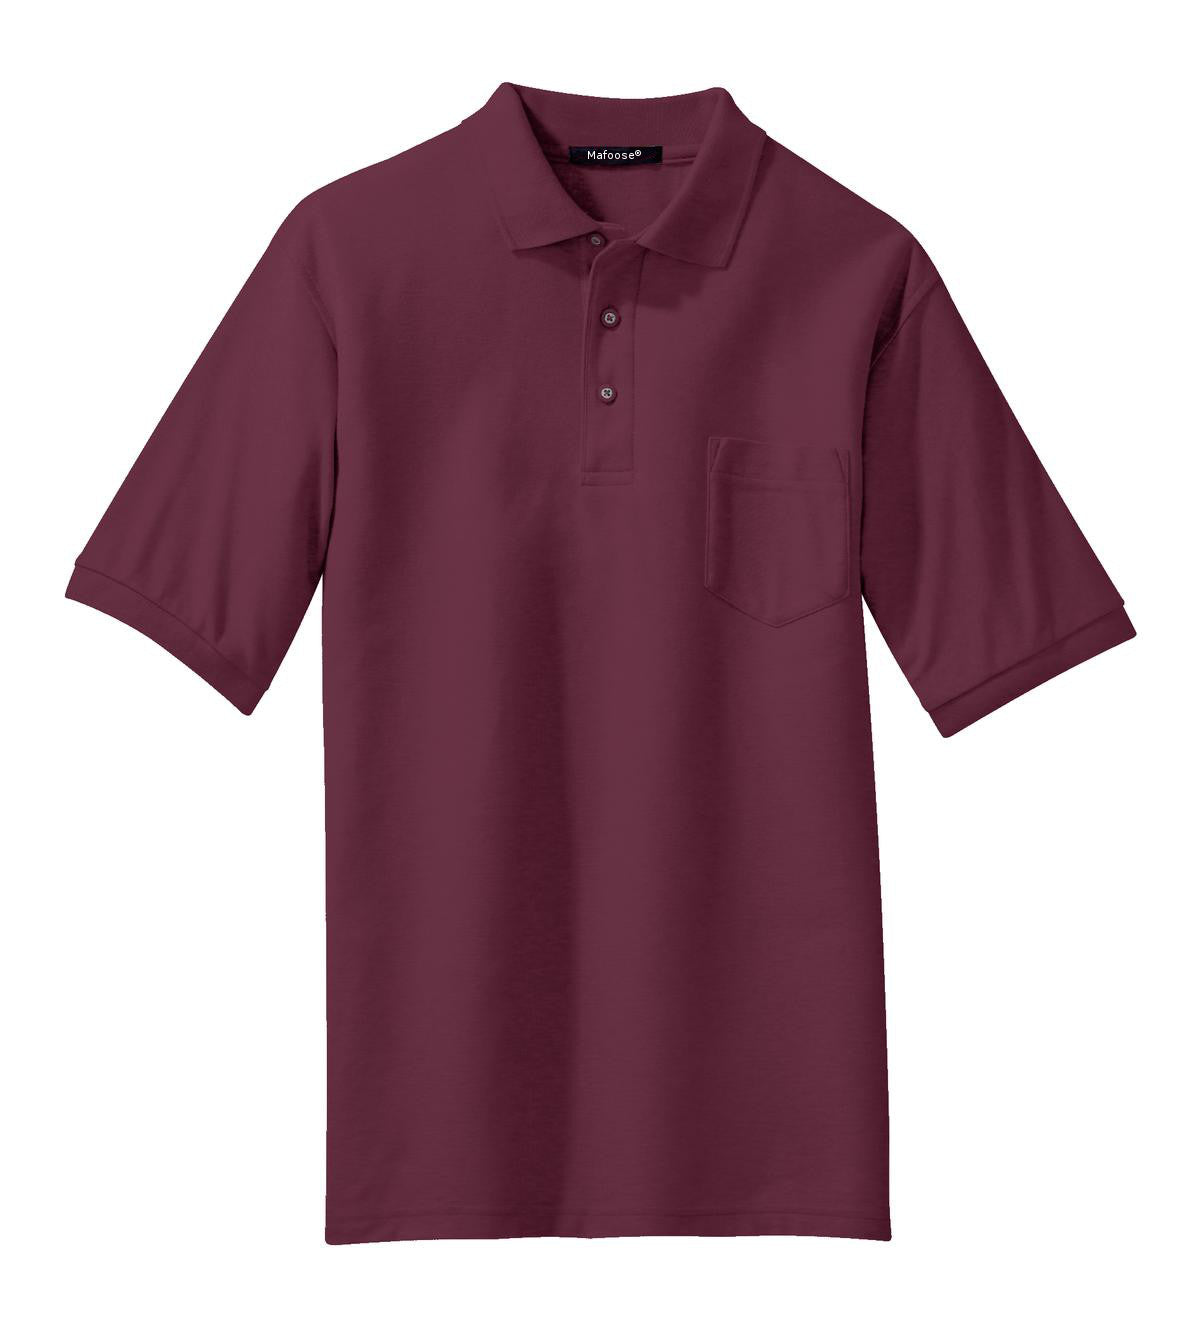 Mafoose Men's Silk Touch Polo with Pocket Burgundy-Front